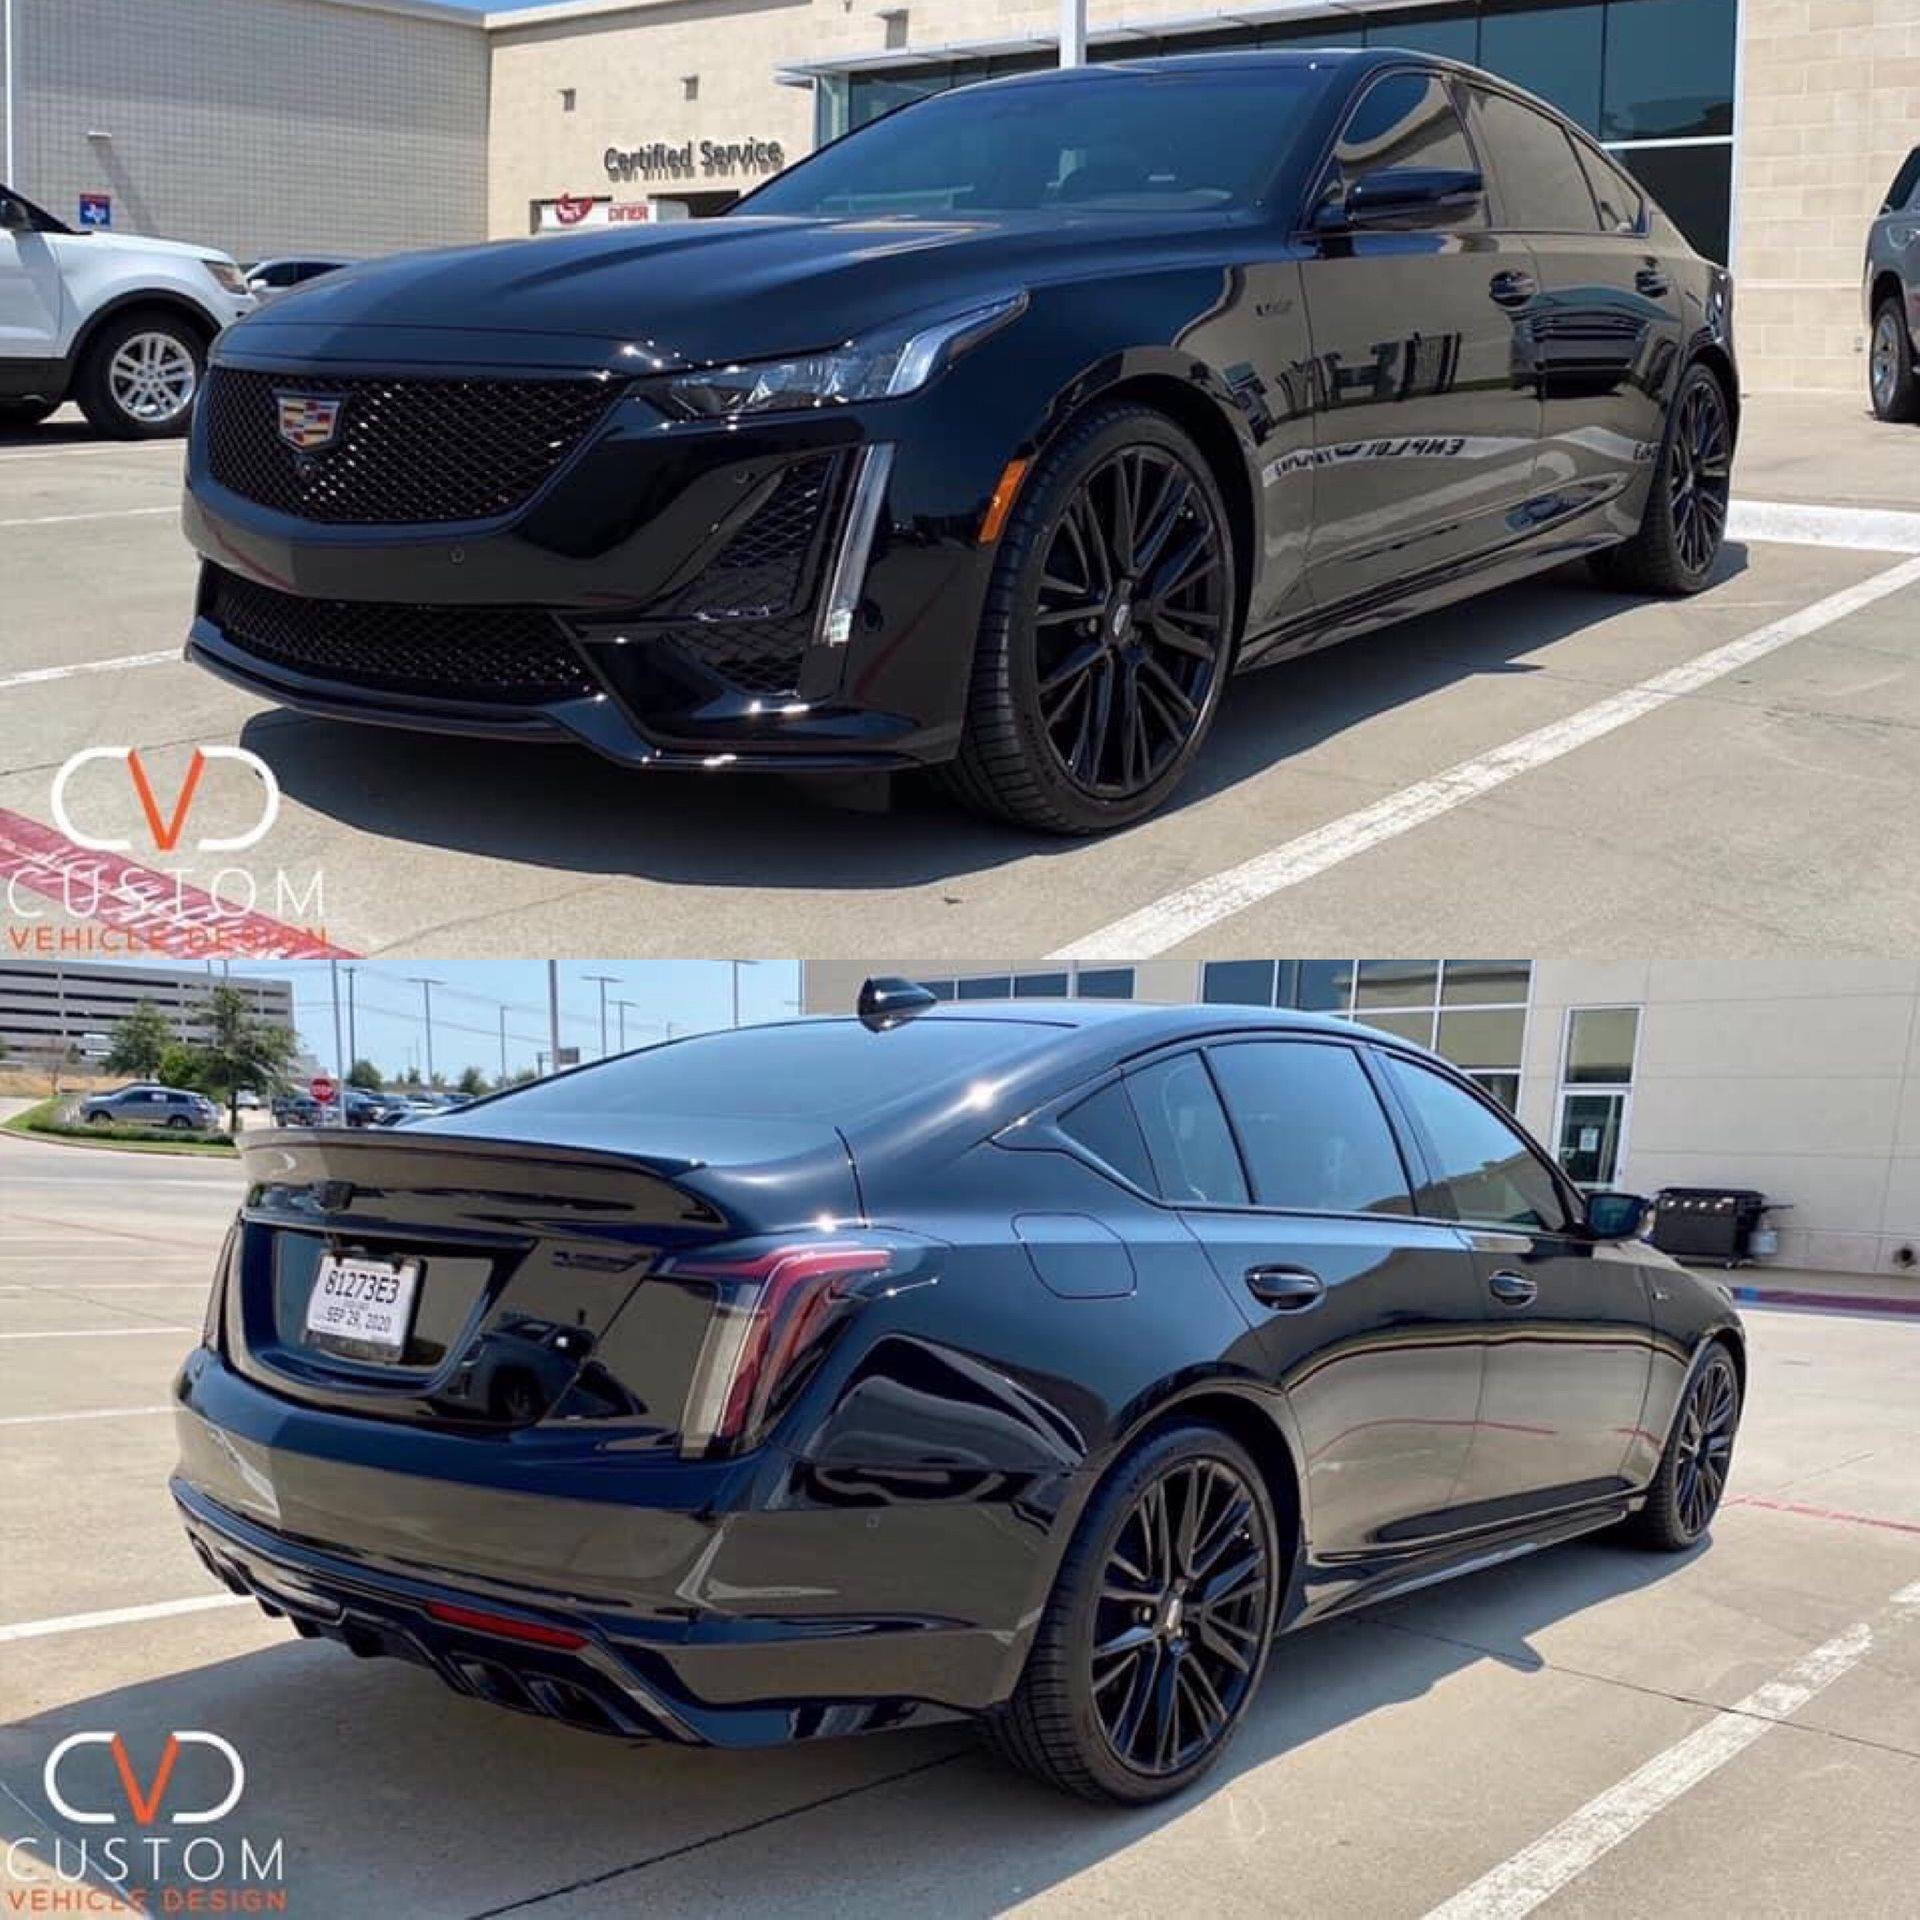 2020 Cadillac CT5-V with complete blackout package done by CVD